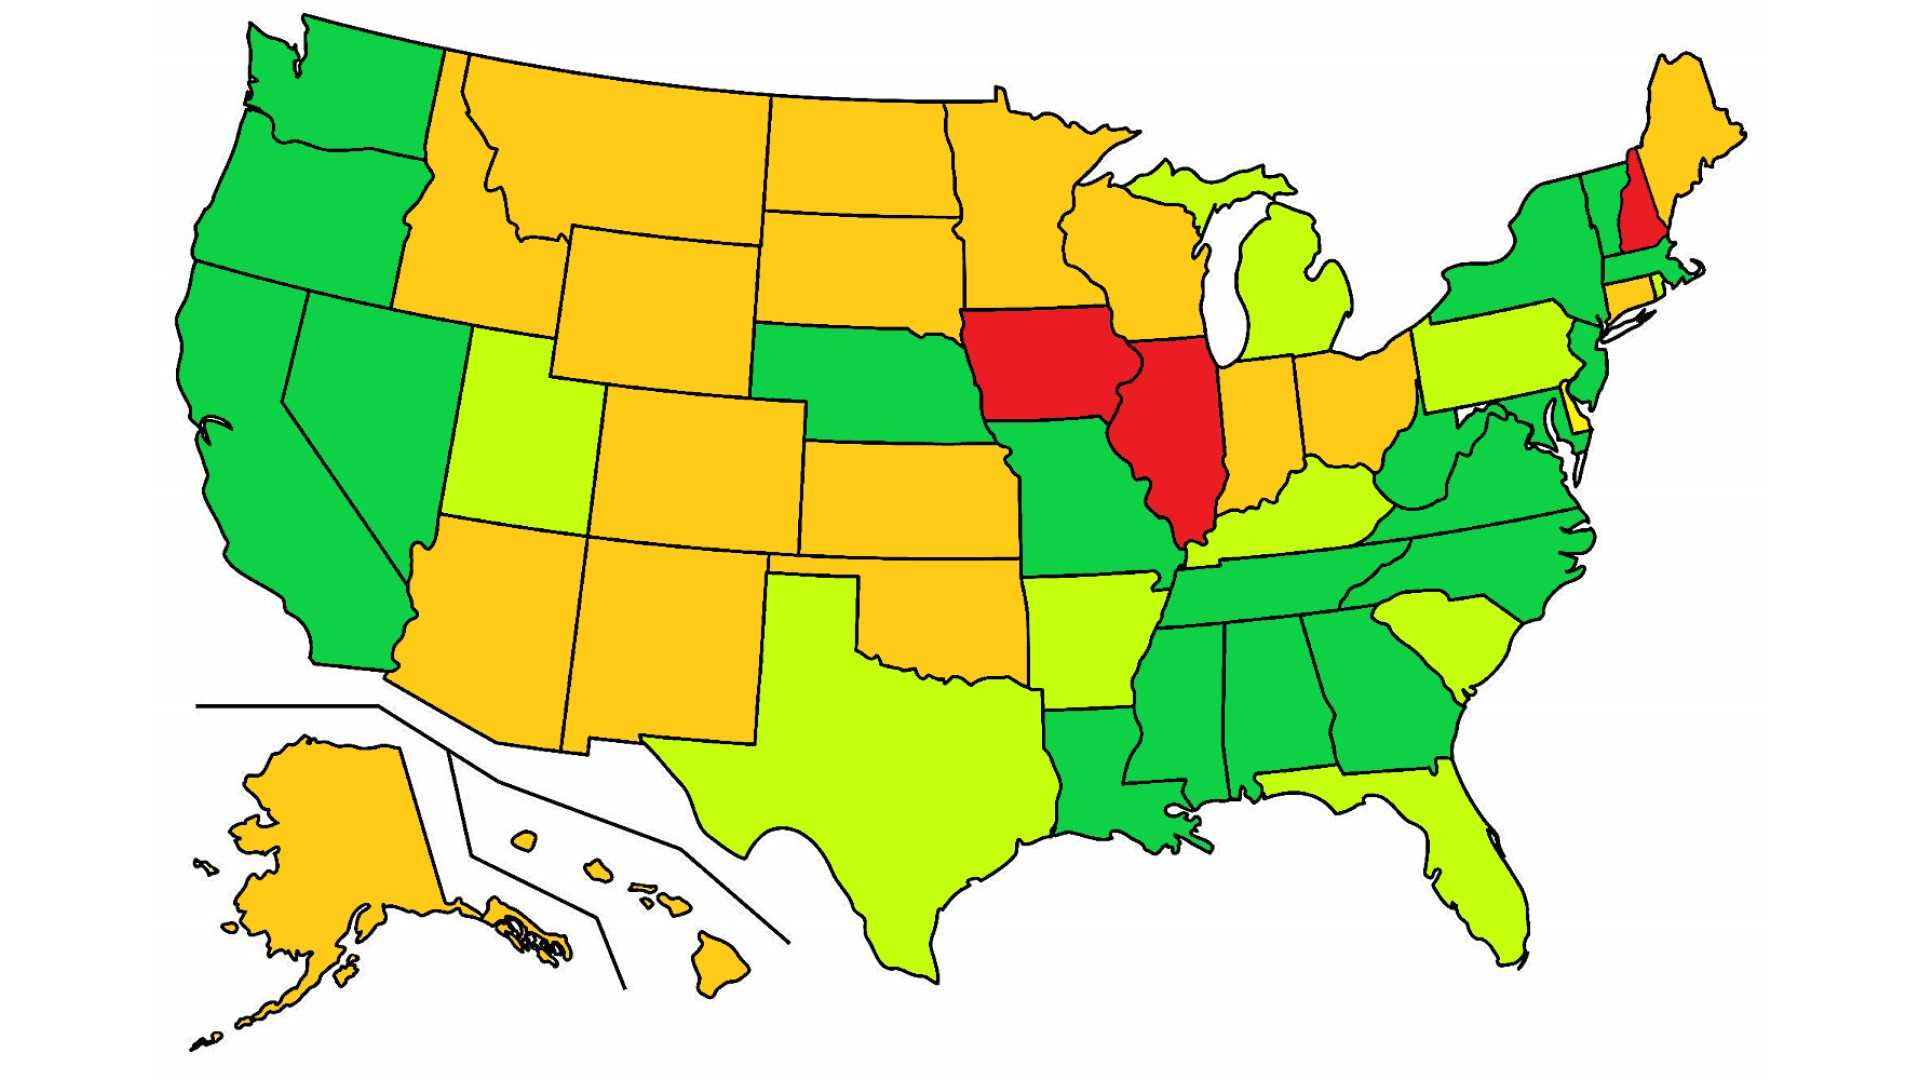 Mandatory Helmet Laws Across The U.S. on maps colorado, maps washington, maps mk, biggest college in each state, maps city, maps united states, most white populated state, maps oklahoma, map of each state, biggest us state, maps ohio, maps maps, maps to color, wealthiest person in each state, maps brazil only, maps virginia, biggest company in each state, world's richest state, 2014 state of the state,